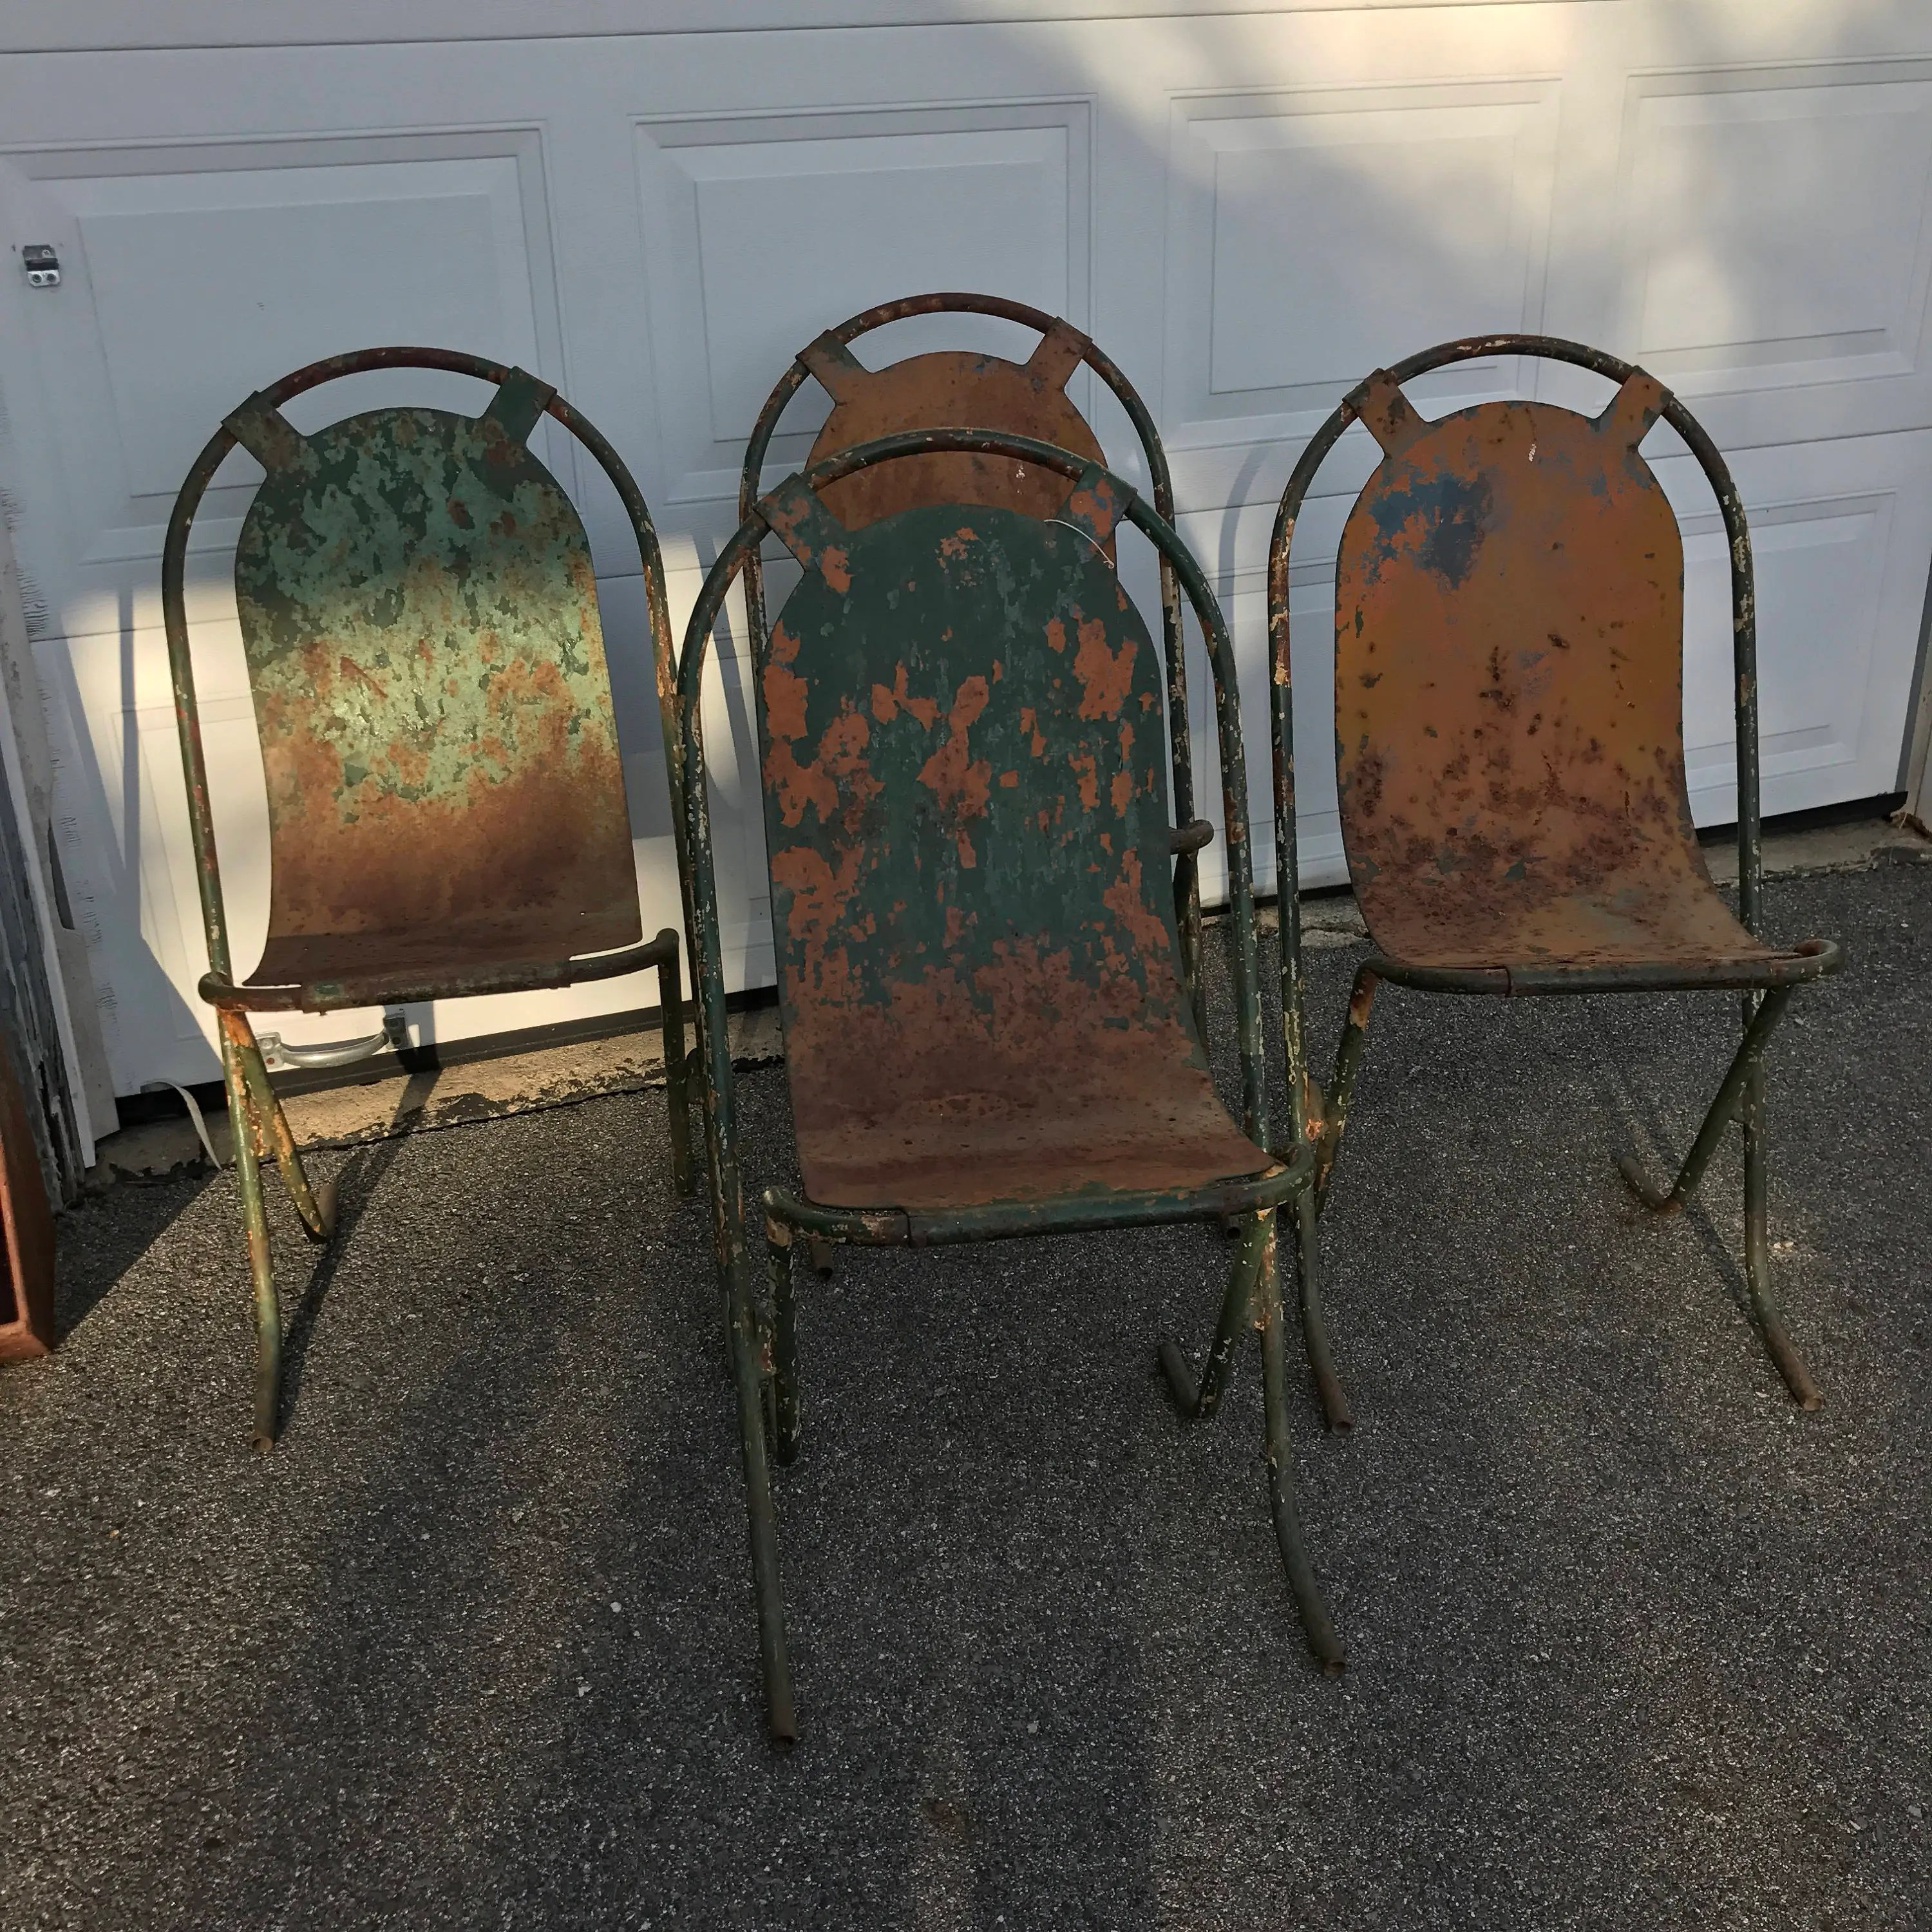 industrial bistro chairs office chair under 2000 vintage french cafe etsy image 0